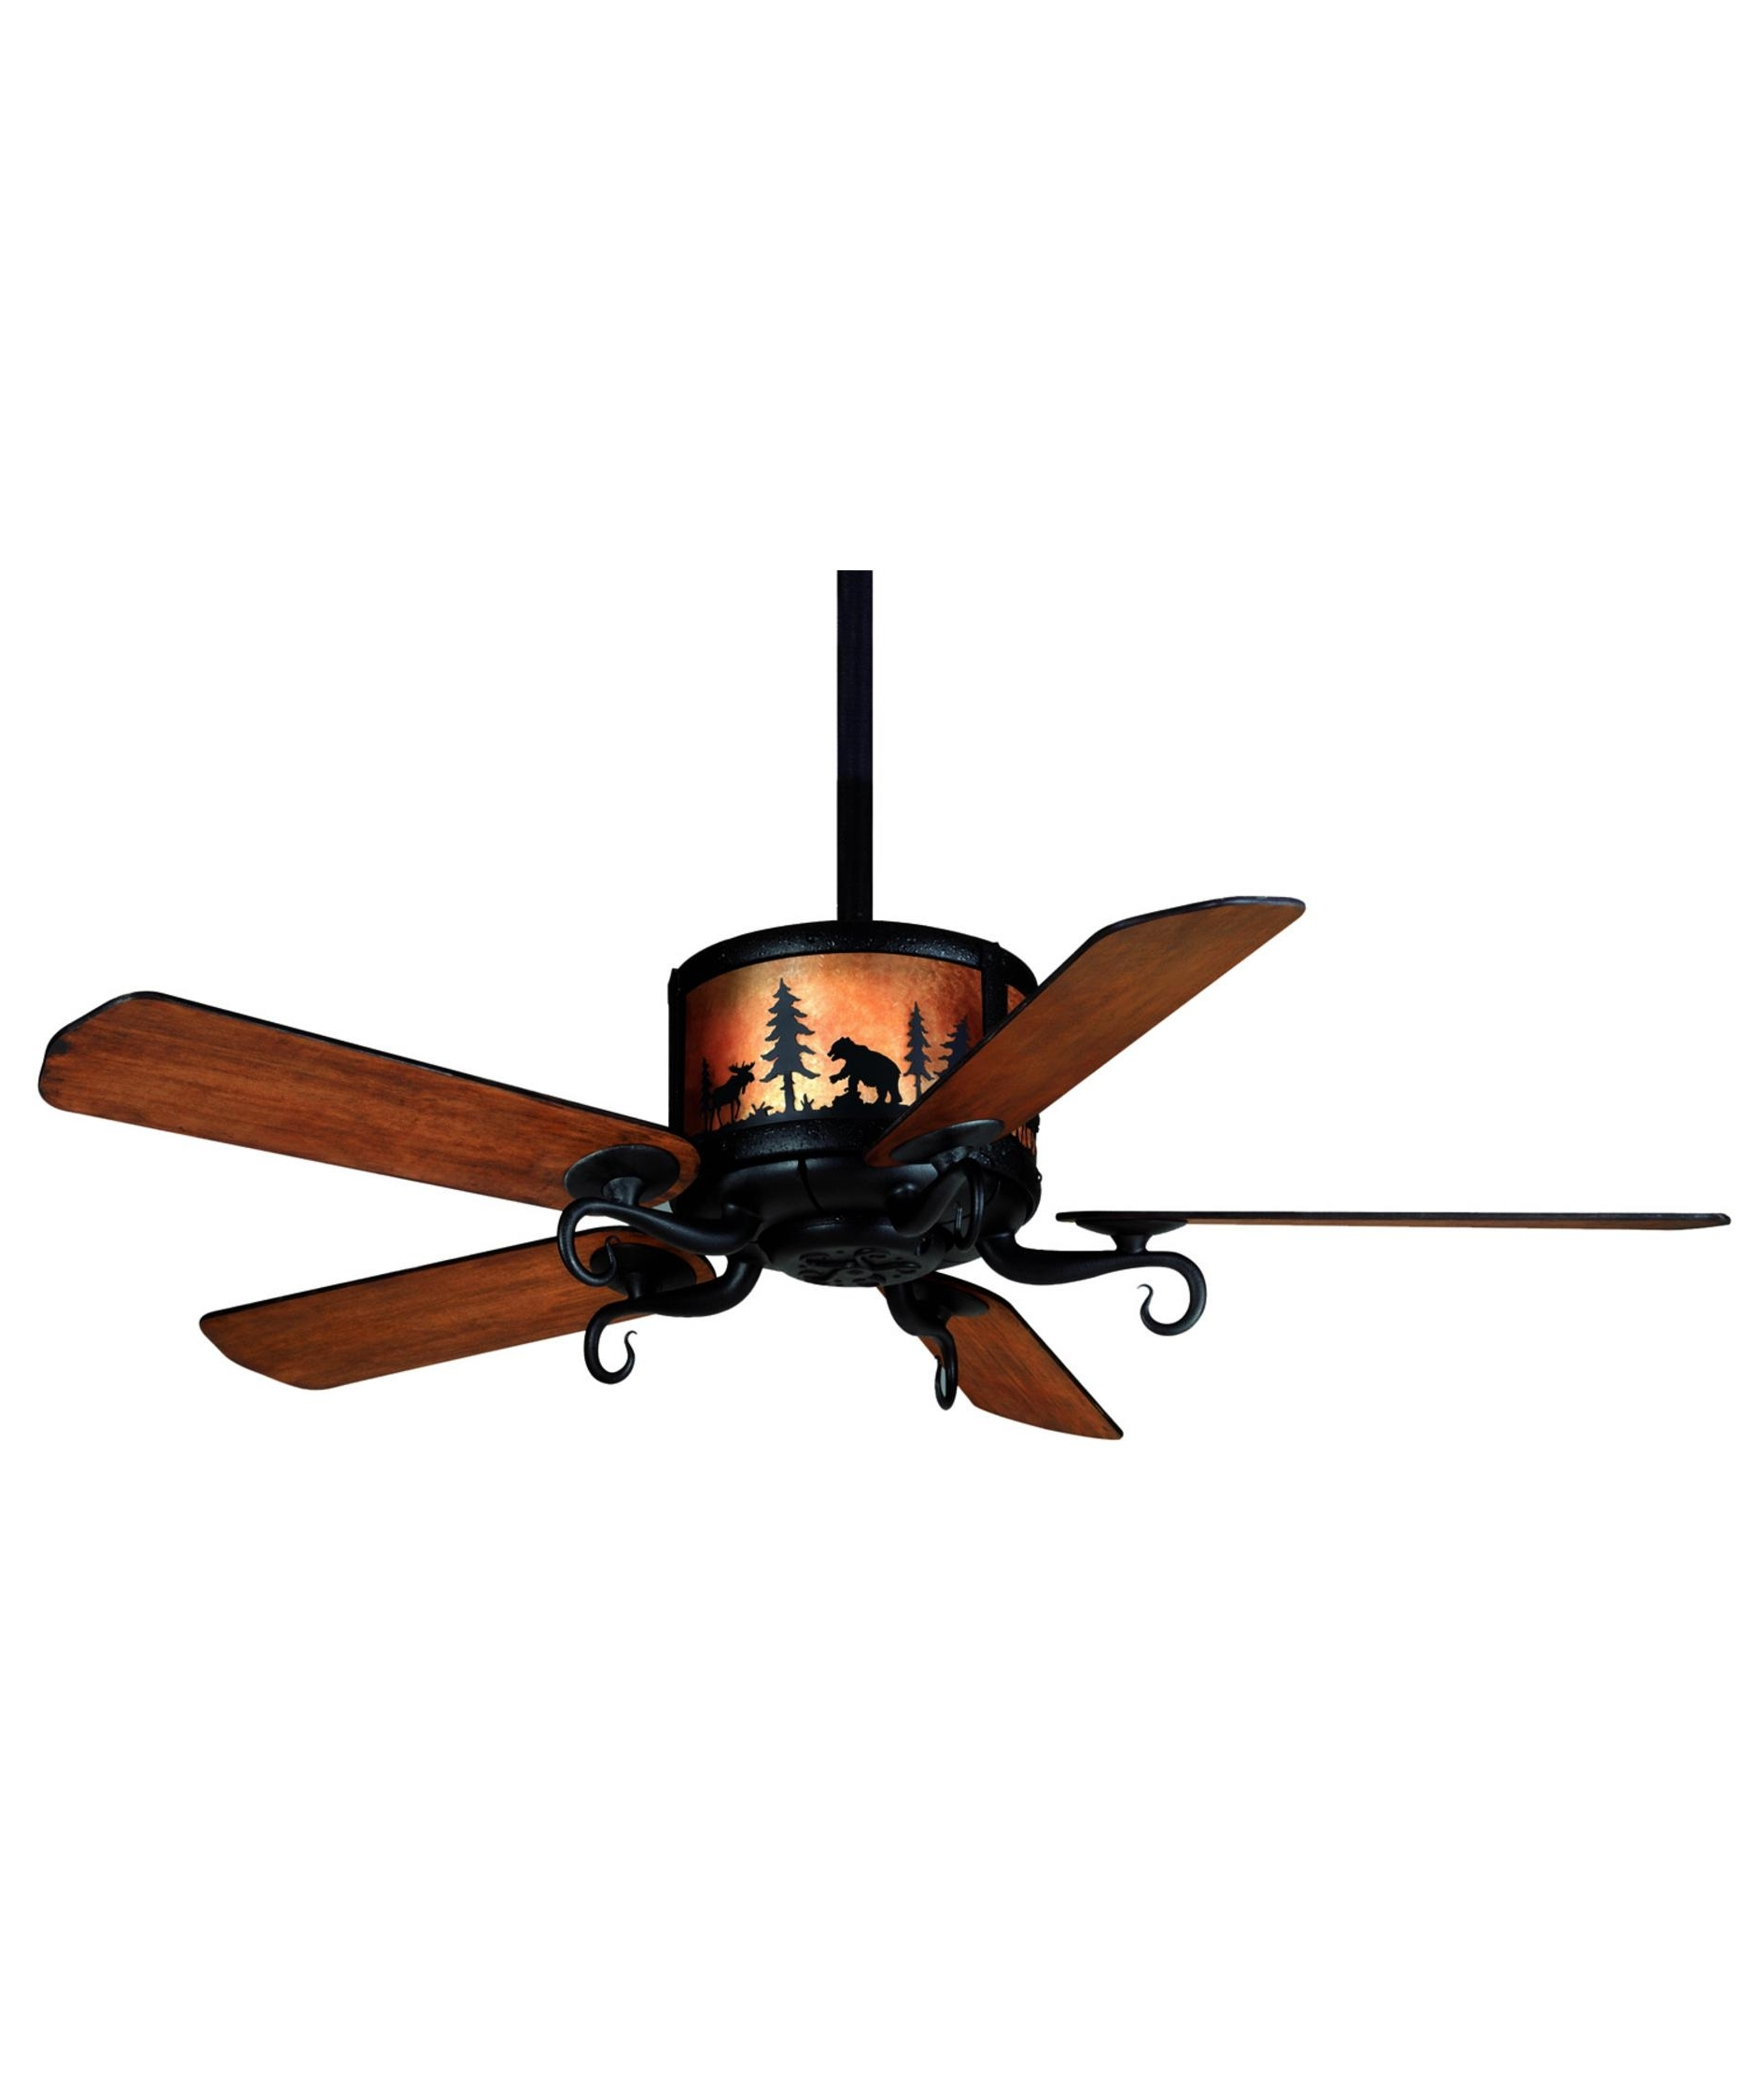 Well Known Casablanca Outdoor Ceiling Fans With Lights Intended For Casablanca 86u89m Wilderness 54 Inch 5 Blade Ceiling Fan (View 9 of 20)